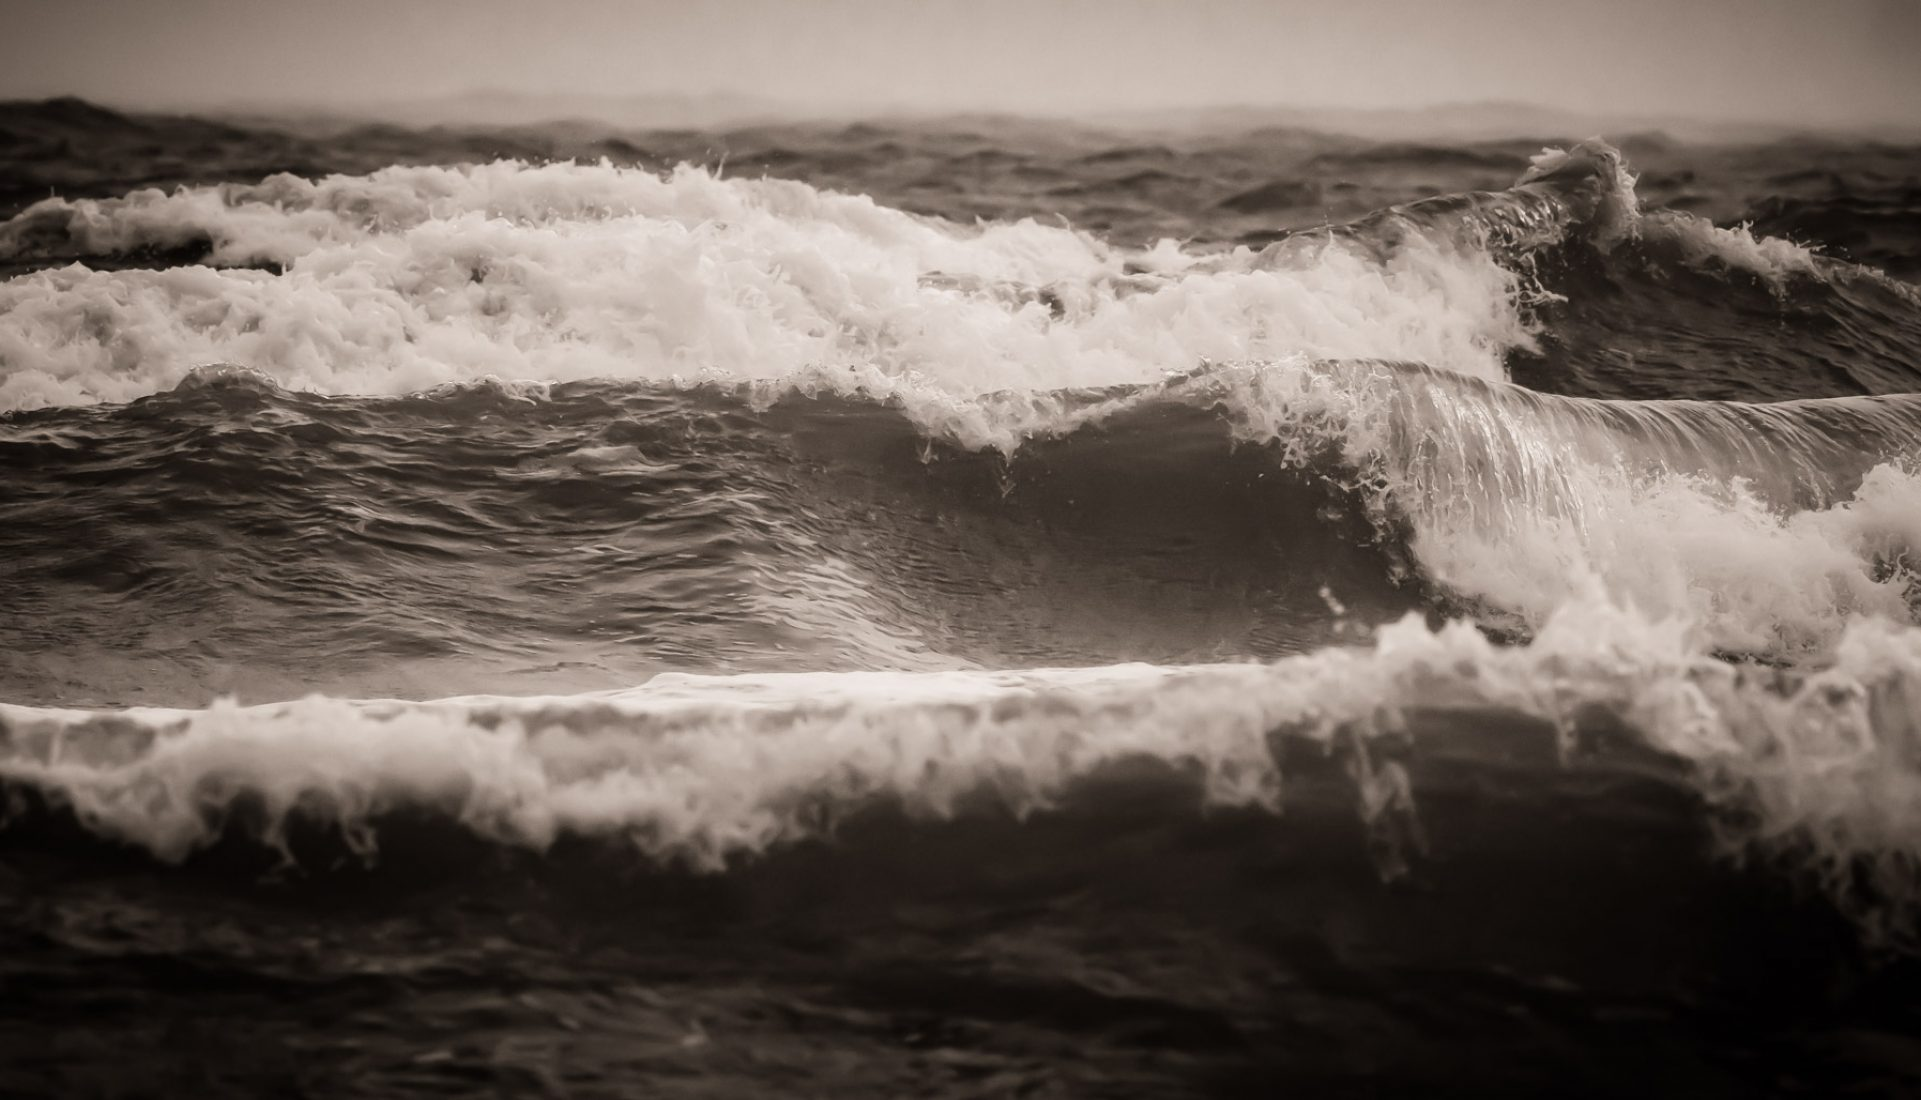 Beauty in an Angry Sea